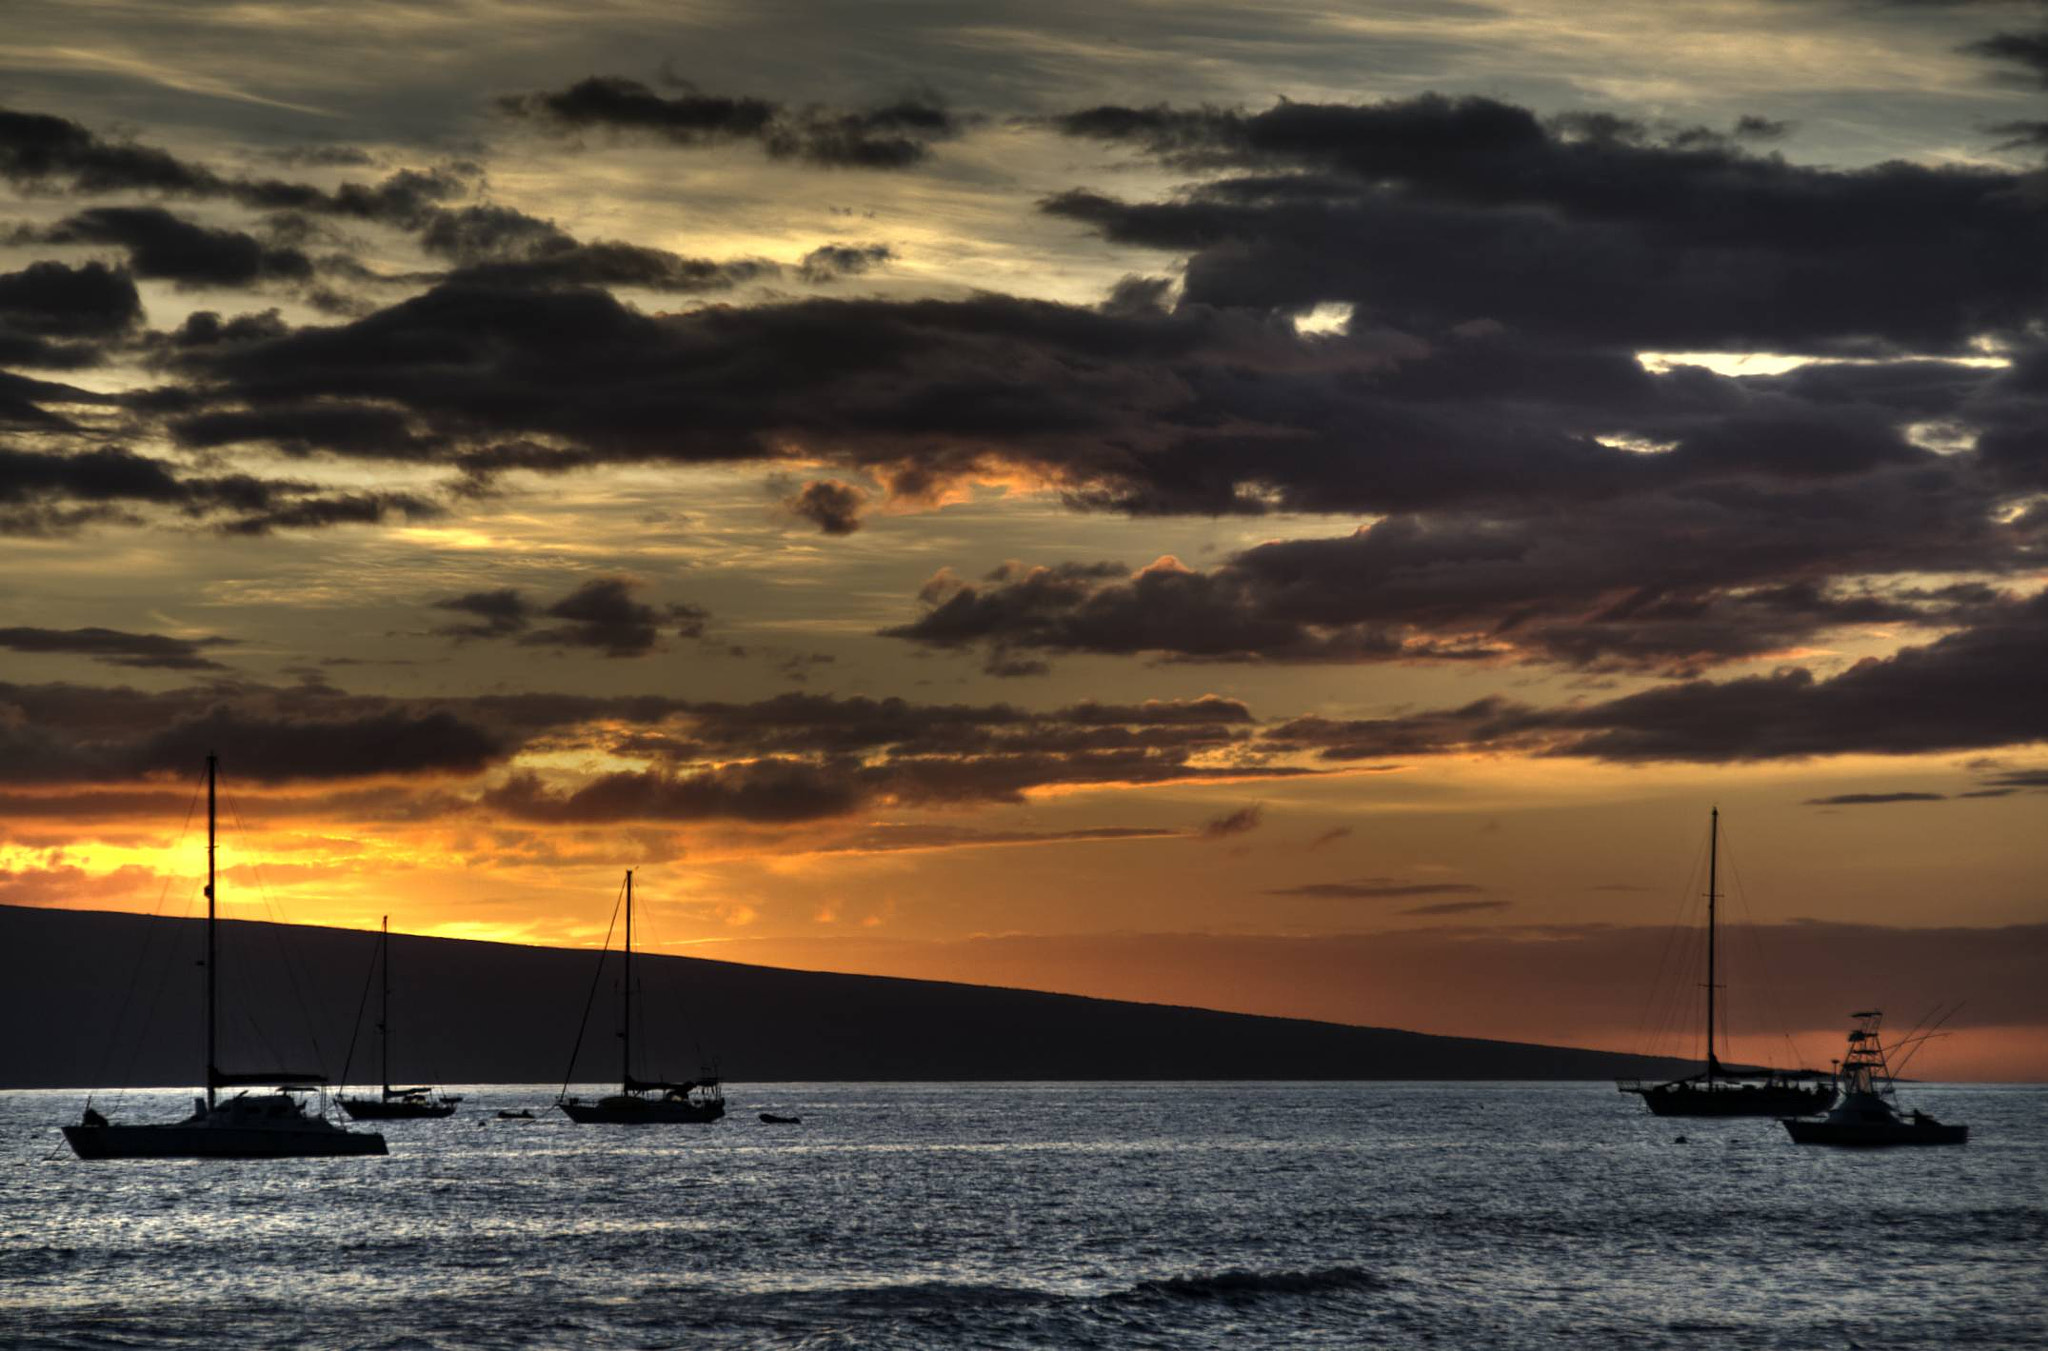 Photograph Sunset on Lanai by Yan Pujante on 500px